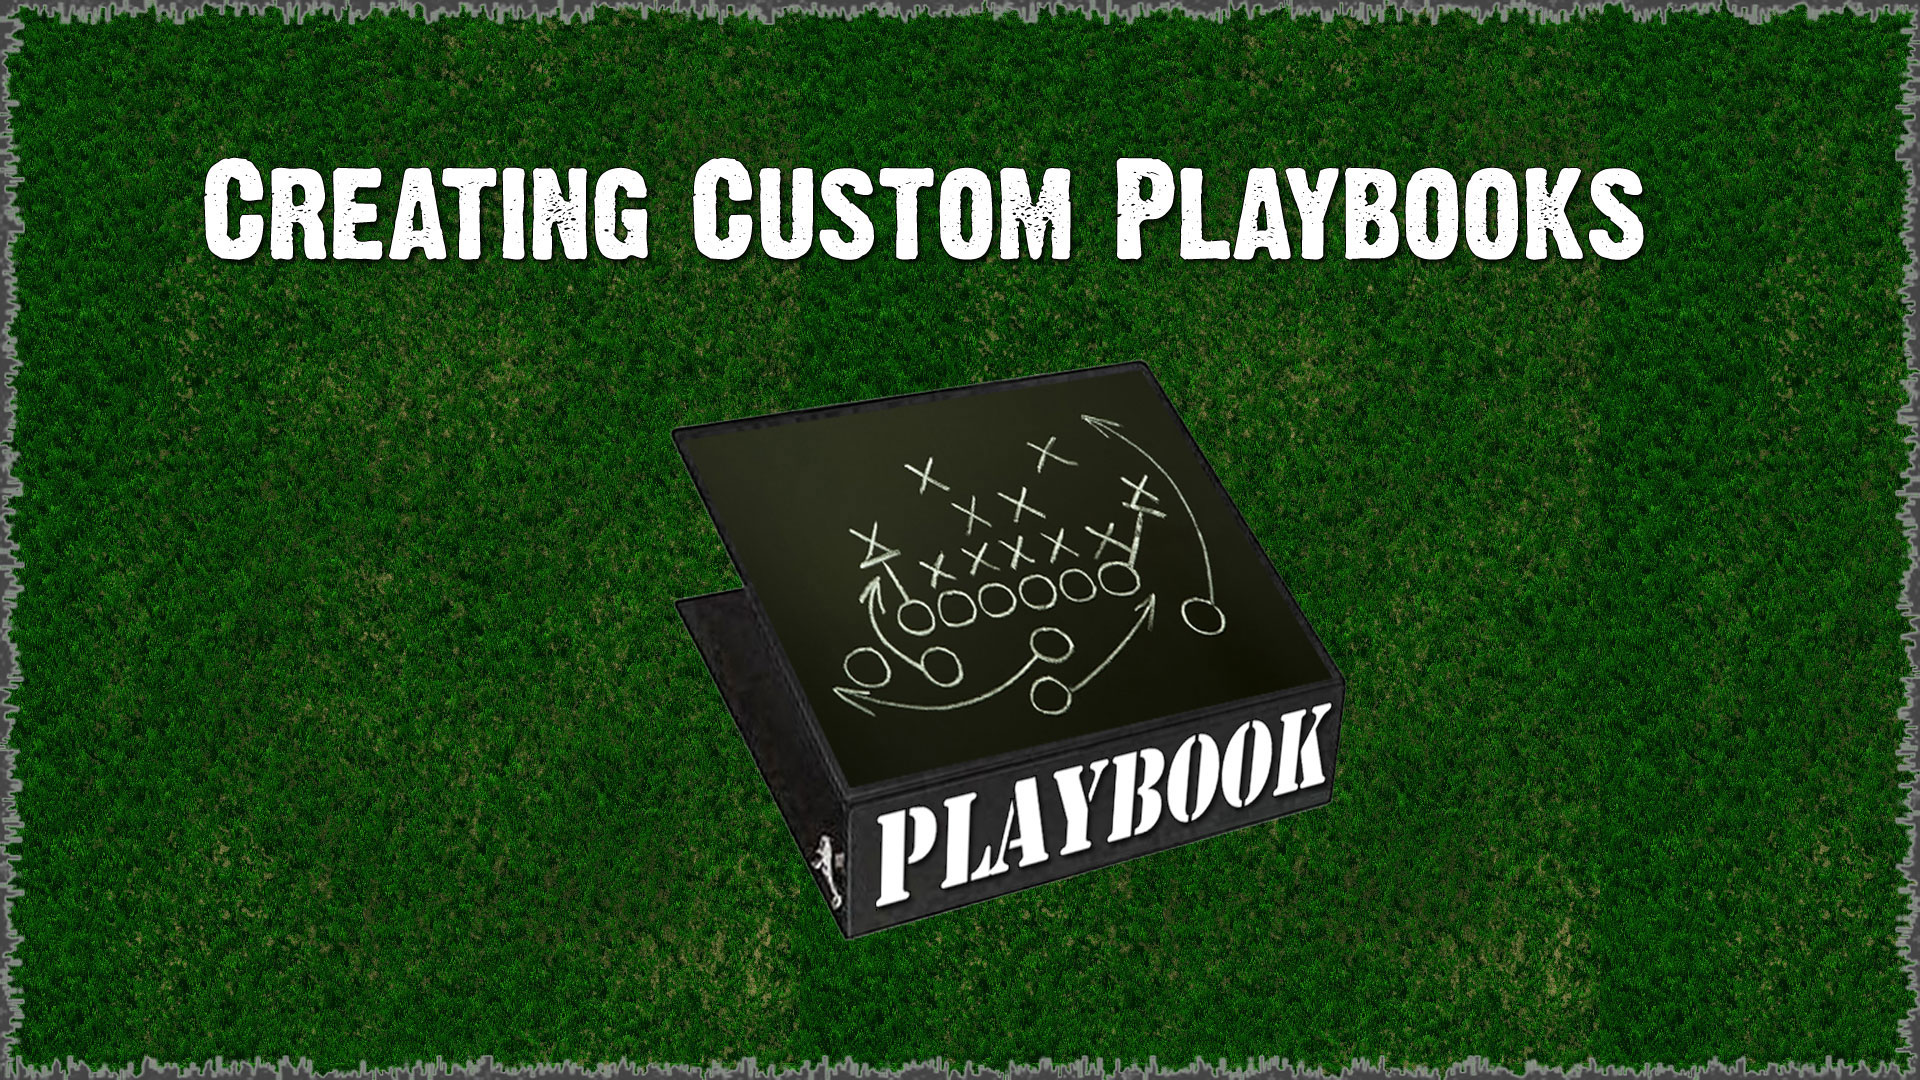 images/articles/creat_custom_playbooks.jpg